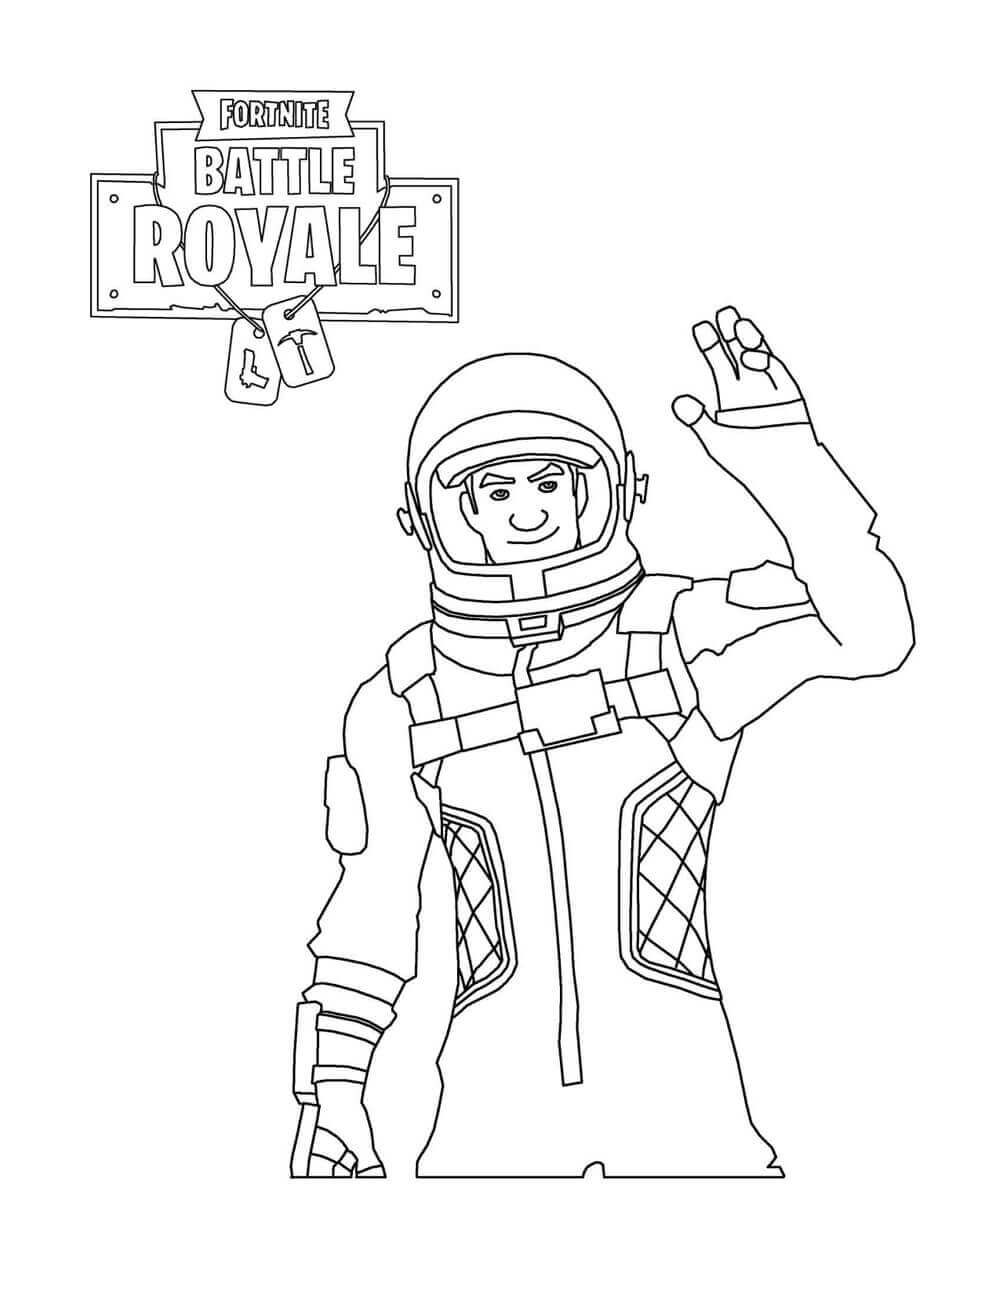 34 Free Printable Fortnite Coloring Pages With Images Coloring